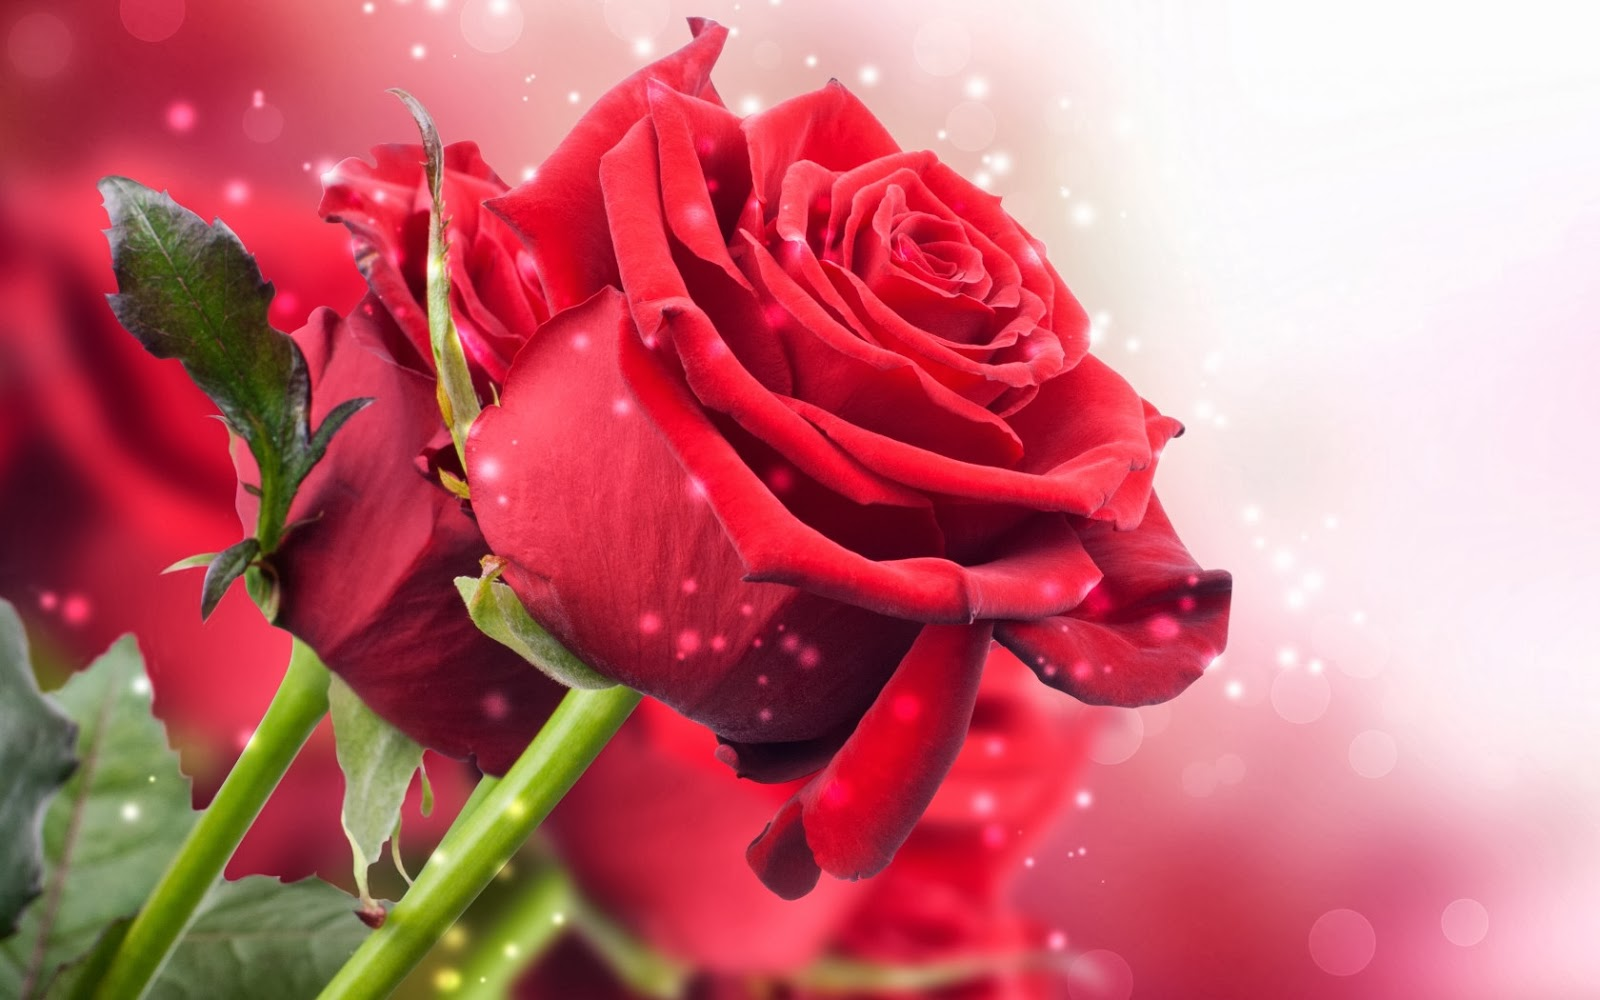 Beautiful_roses-image-for-wishing-friends-and-family-Template-card.jpg